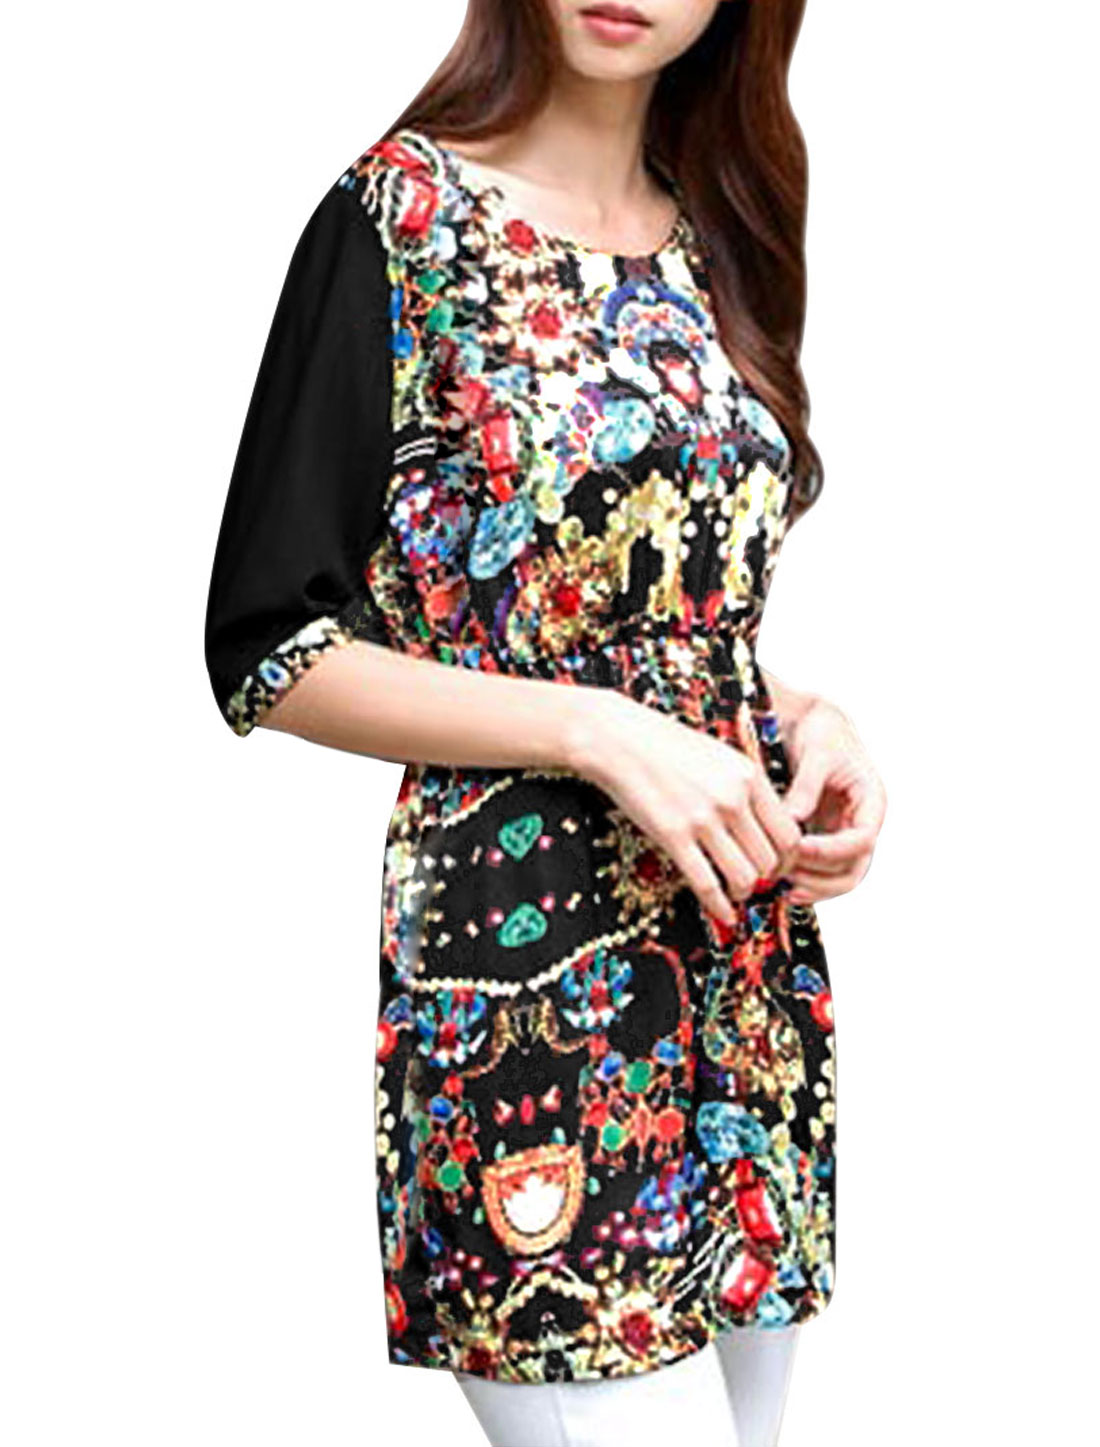 Women Gem Prints Half Sleeve Chiffon Round Neck Tunic Shirt Black Xs